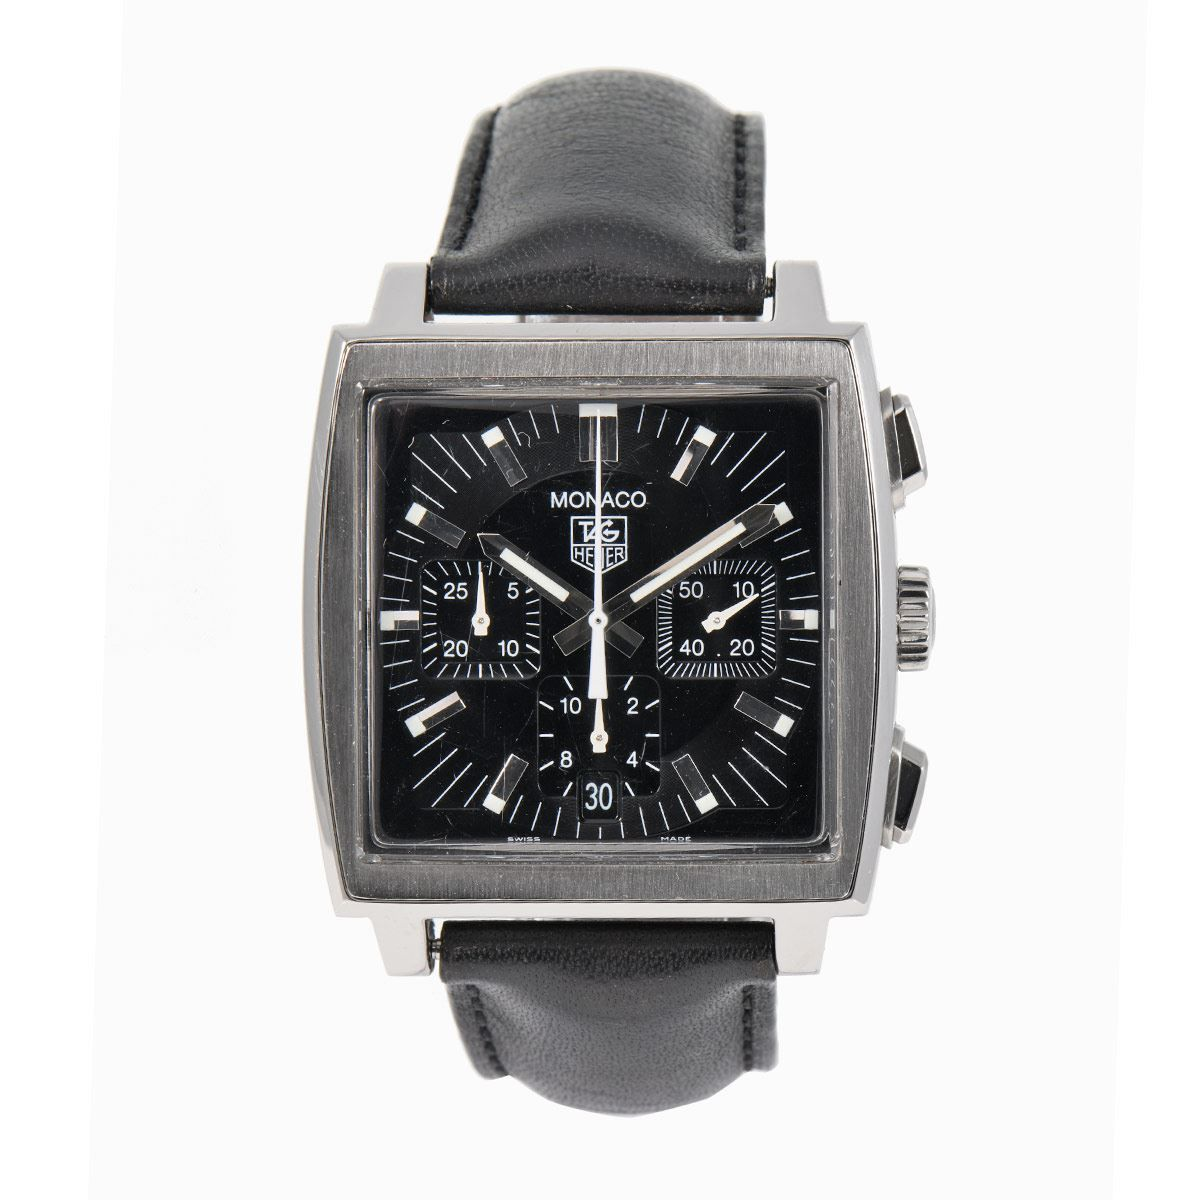 Tag Heuer Monaco CW2111 Black & Leather 38mm Mens Watch